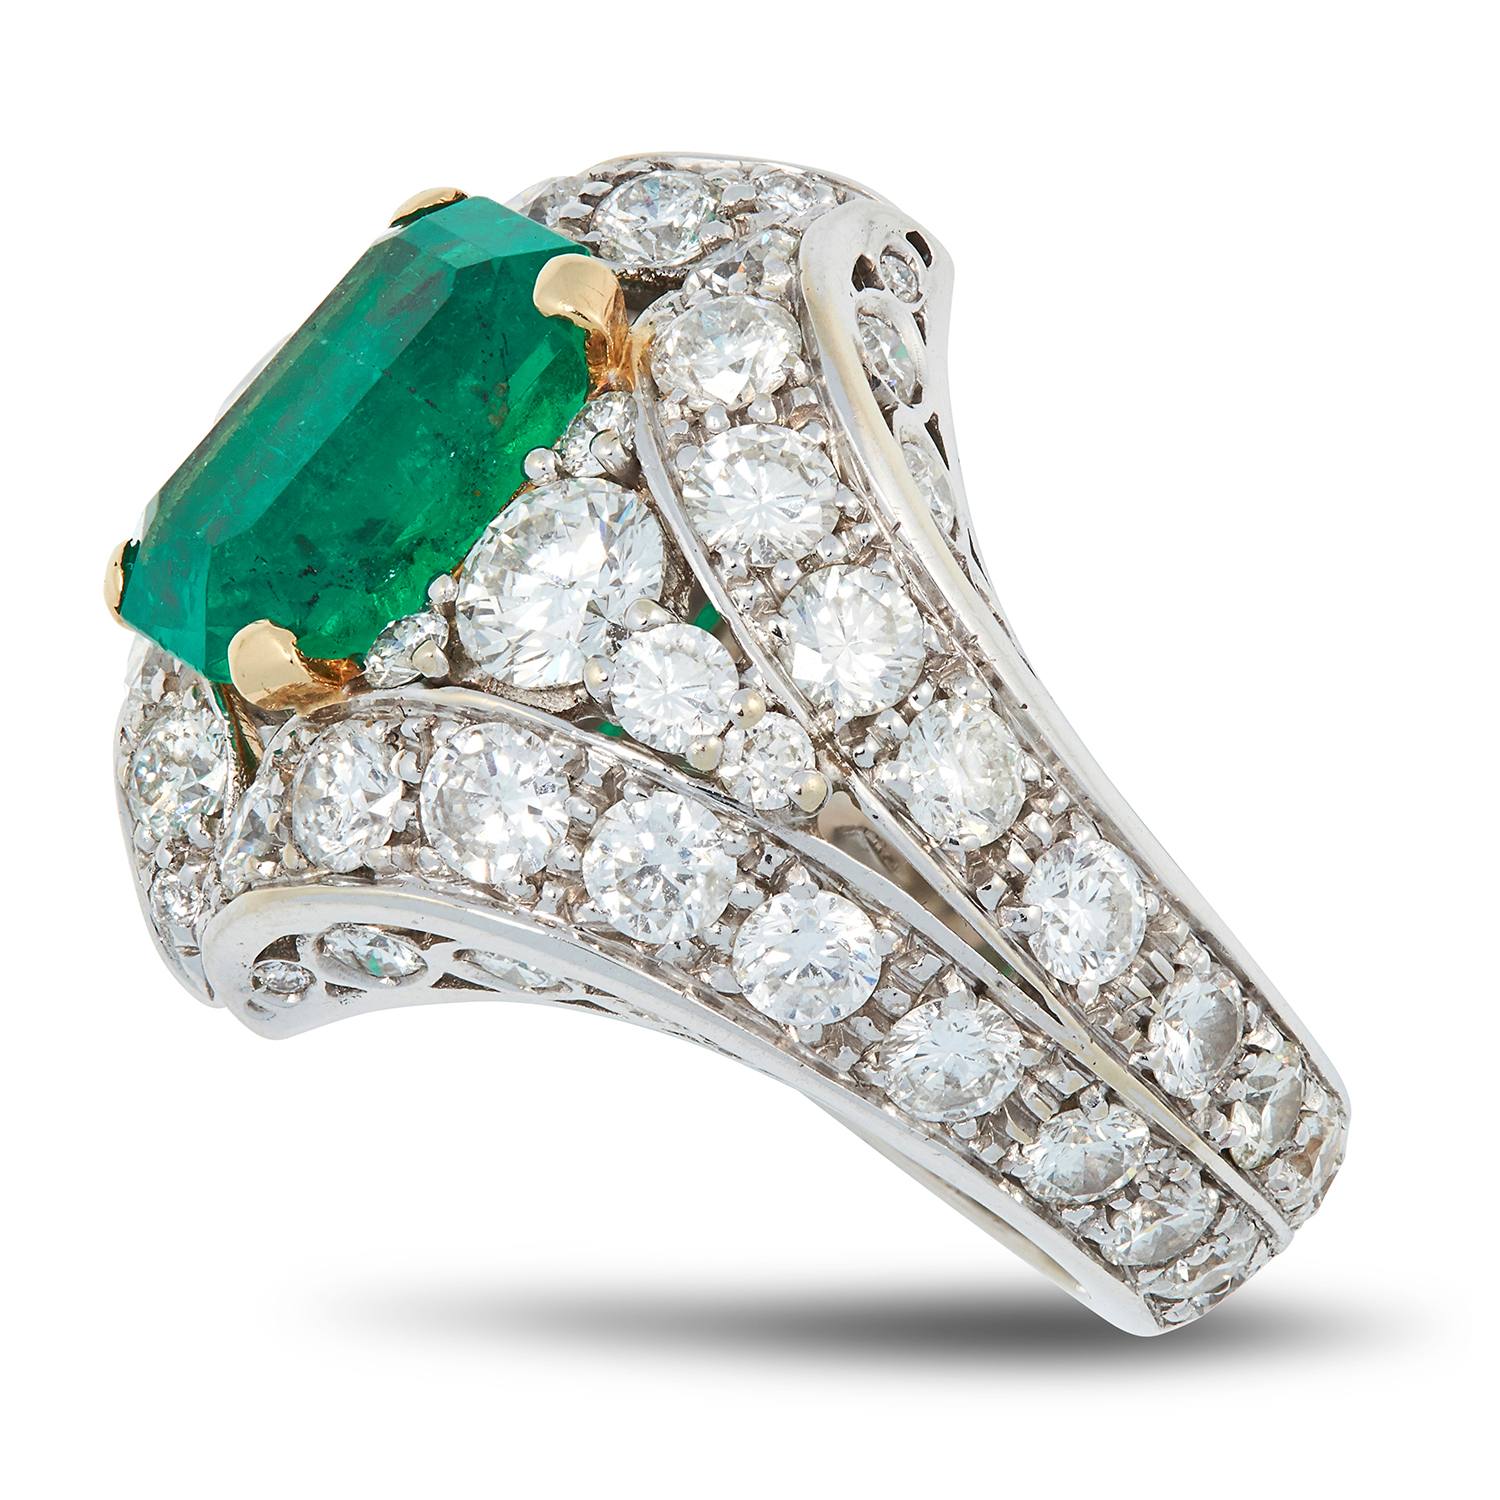 A COLOMBIAN EMERALD AND DIAMOND DRESS RING set with an emerald cut emerald of 4.20 carats, the mount - Image 2 of 2